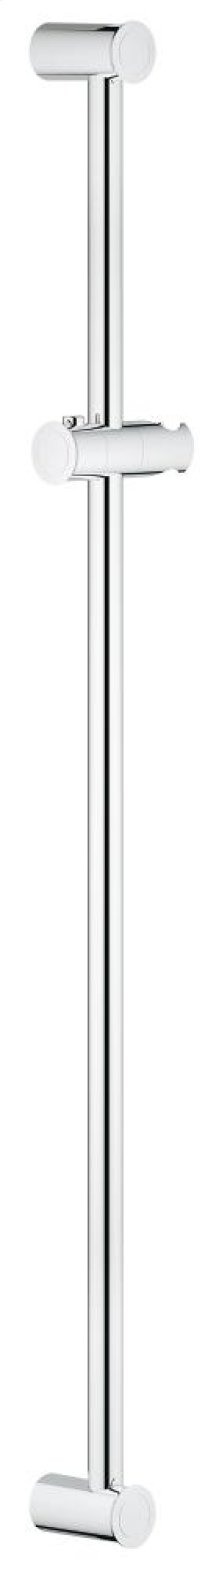 "36"" Shower Bar"